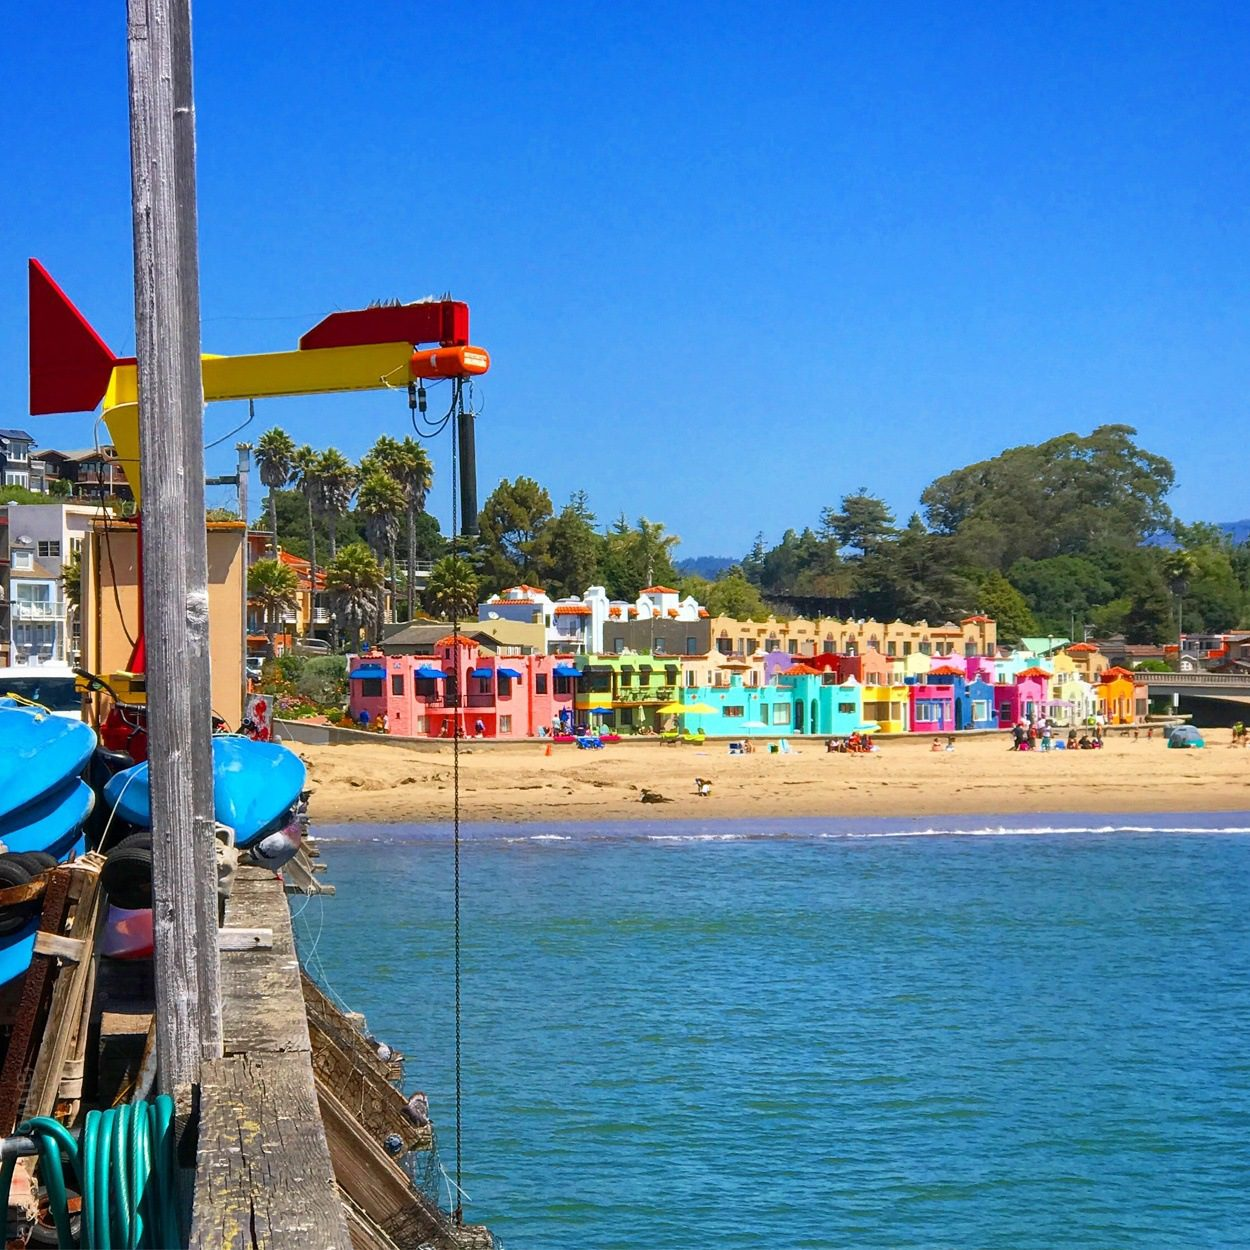 Bright colors of Capitola, California this July.